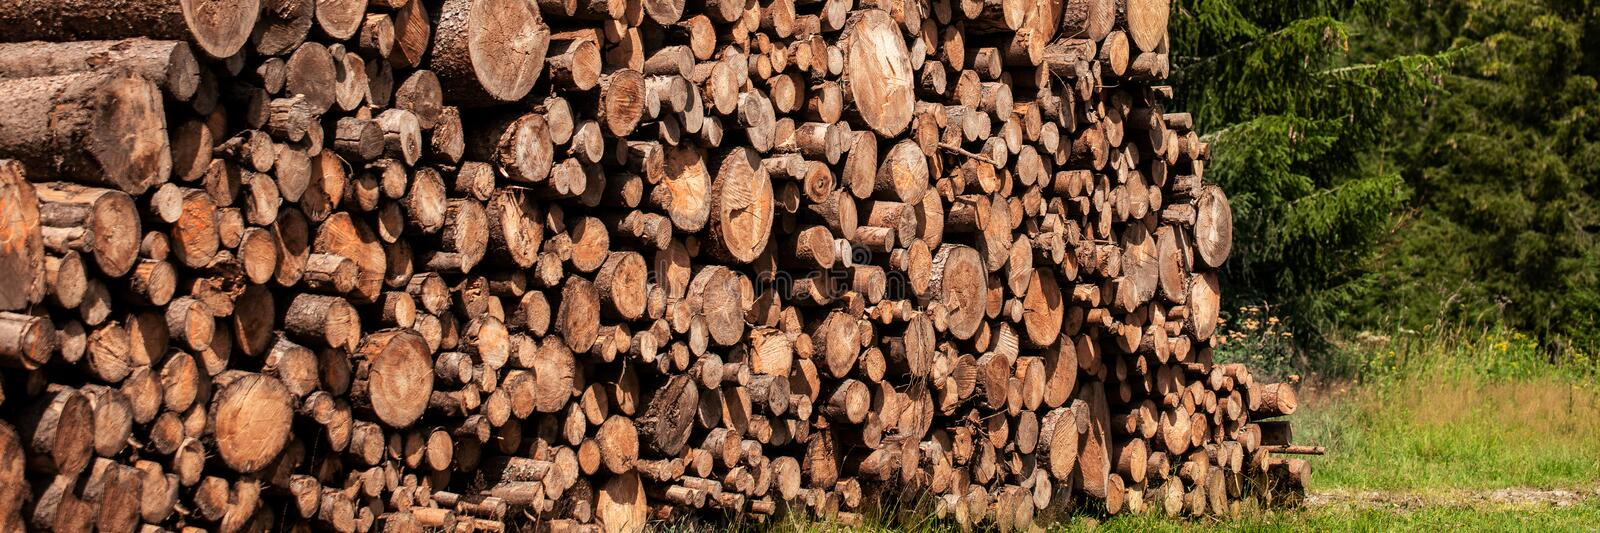 Pine tree forestry exploitation. Stumps and logs. Overexploitation leads to deforestation. Timber logging industry. Pine tree forestry exploitation. Stumps and royalty free stock images